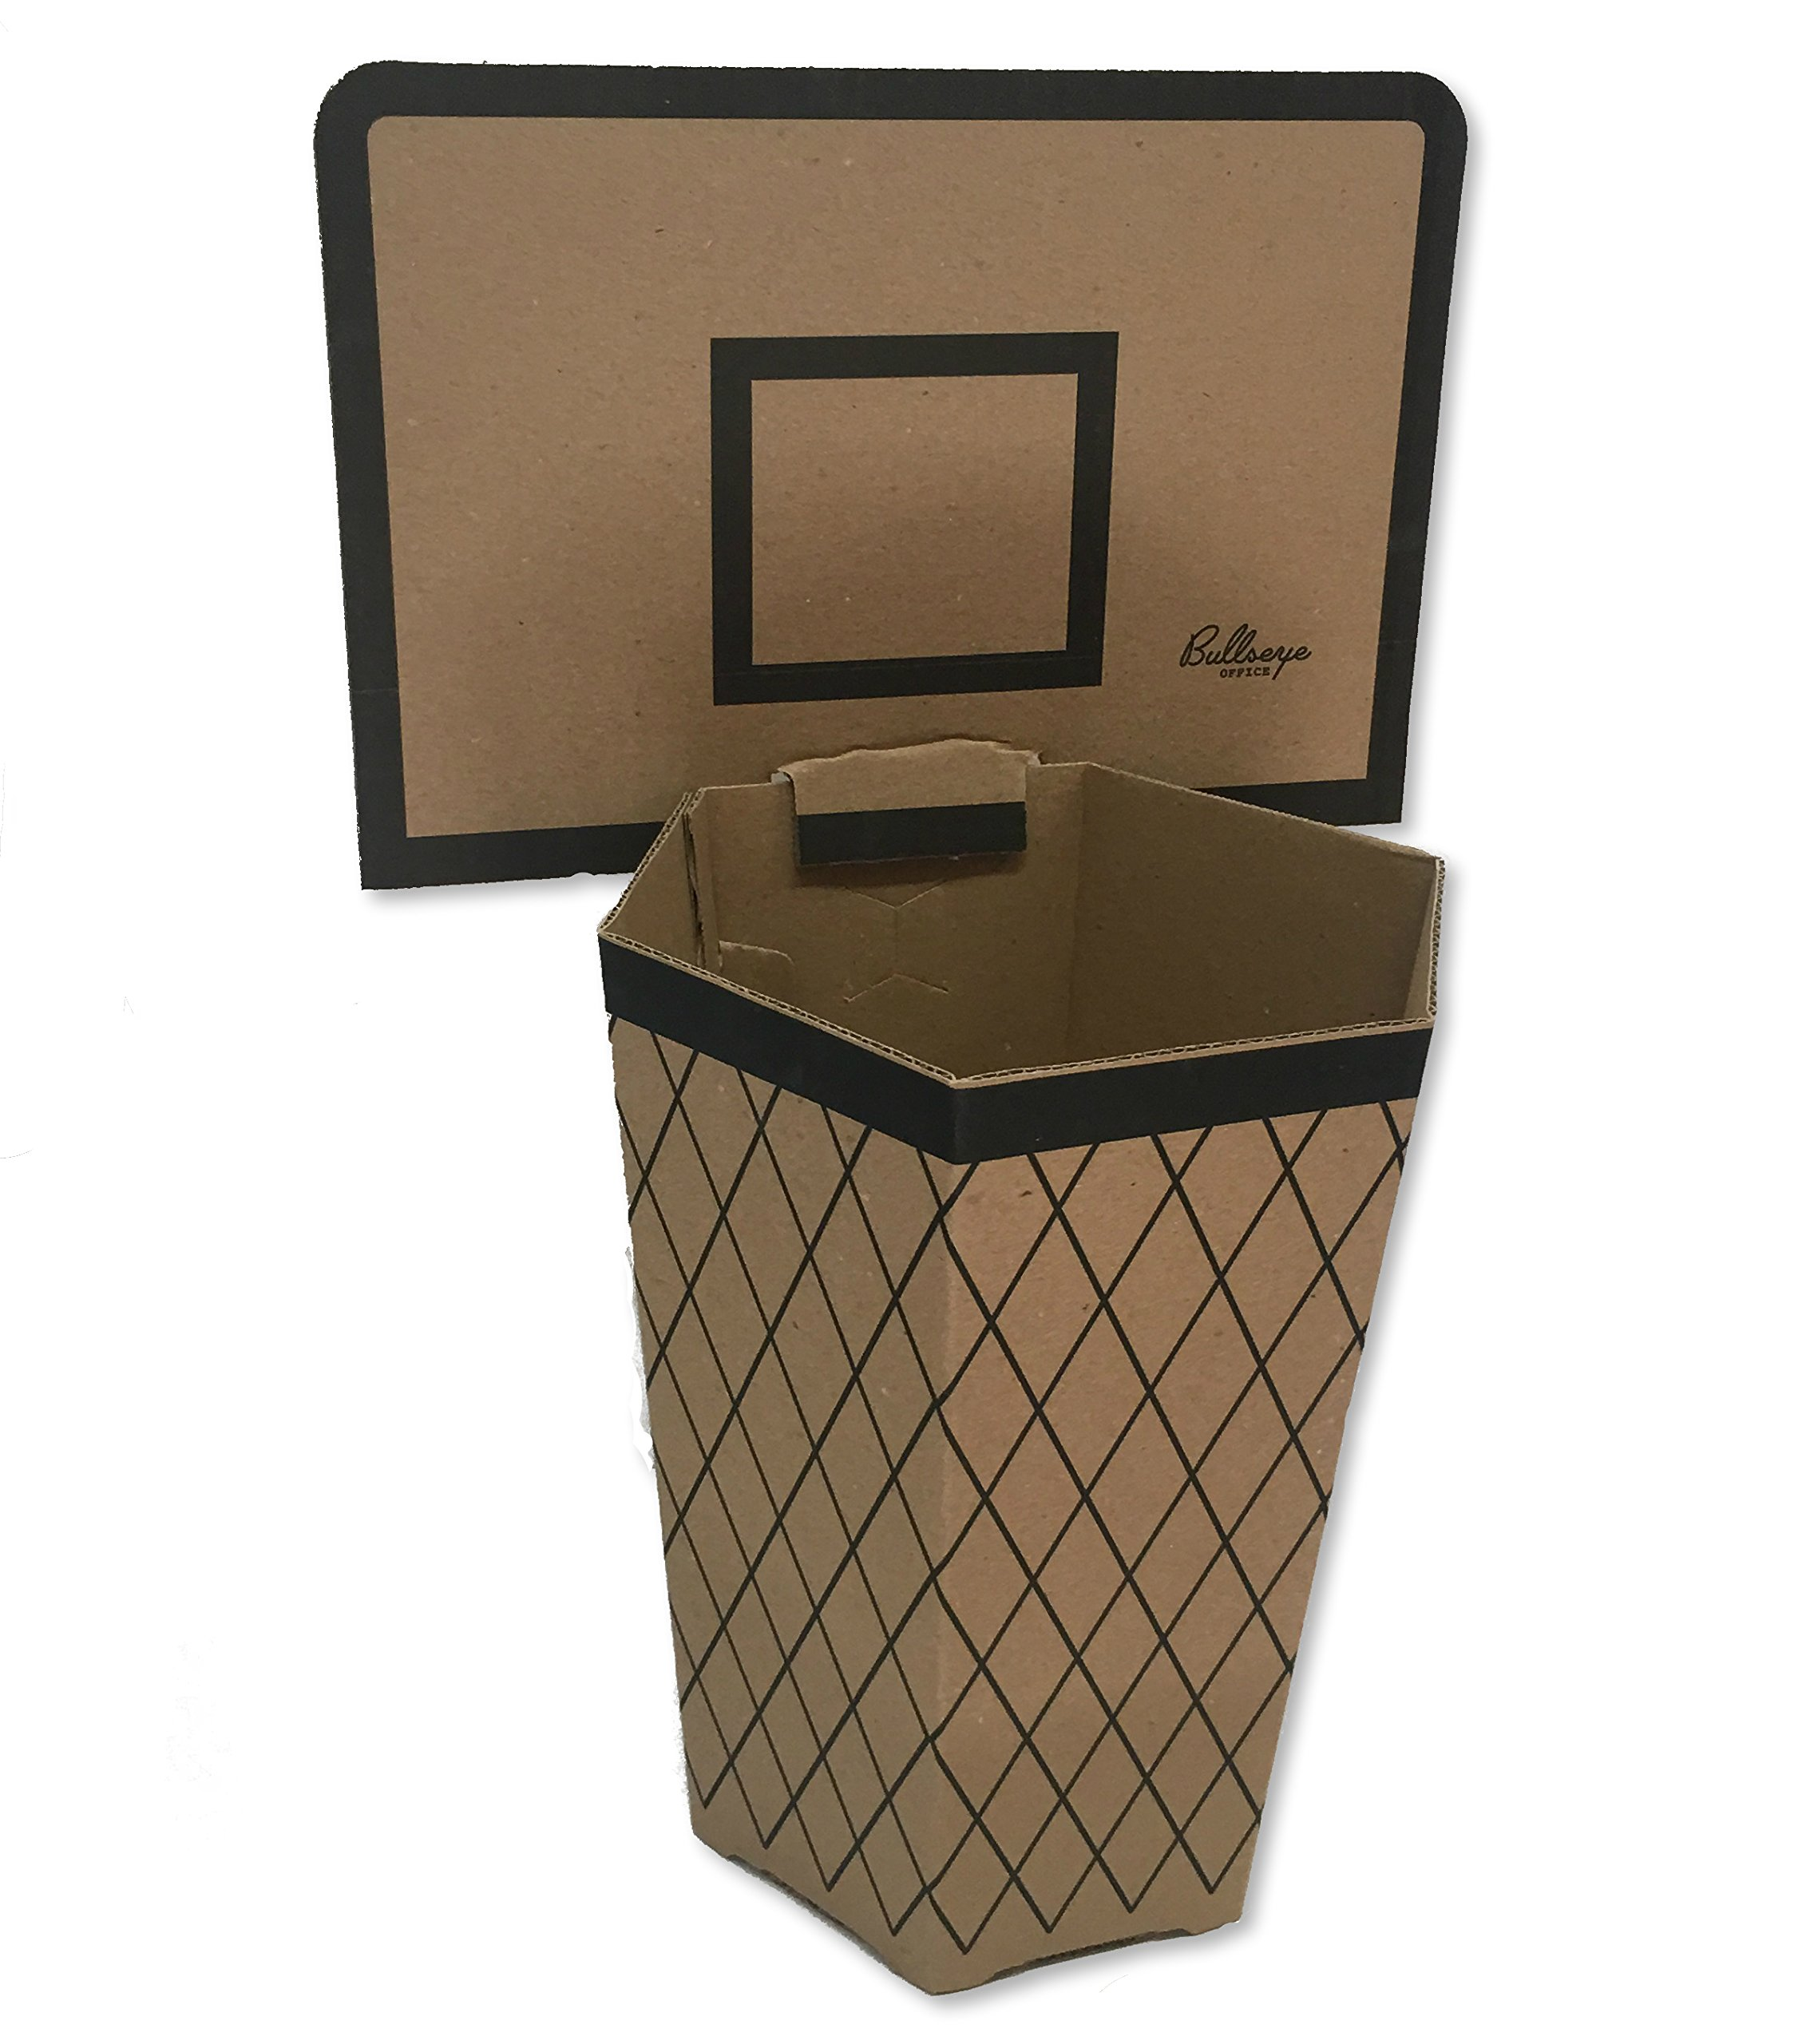 Bullseye Office Cardboard Basketball Trash Can Theme - Perfect Small Waste Basket or Bin for College Dorm, Office Desk, Bathroom, Kitchen, or Home! Fun NBA Inspired Net!